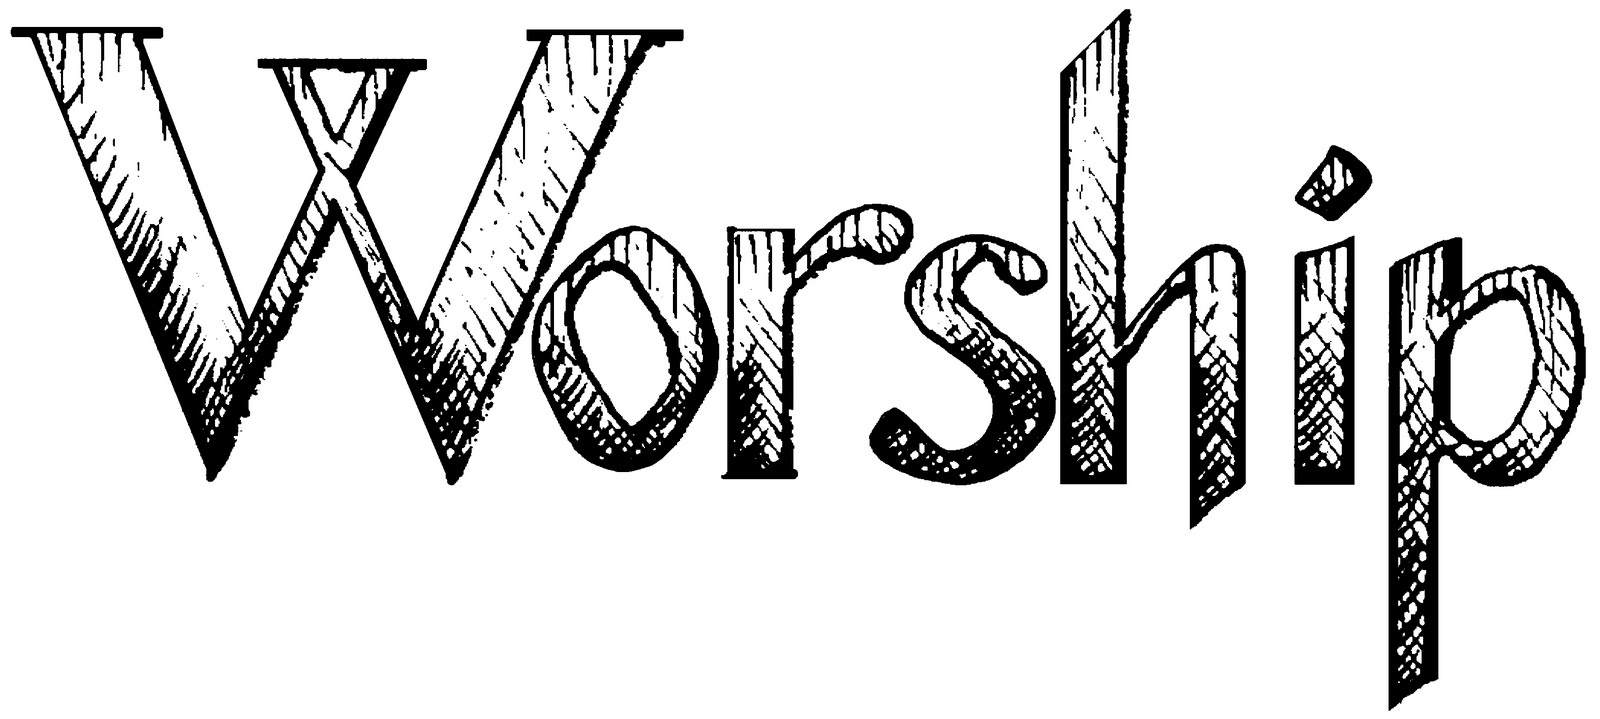 Free Evening Worship Cliparts, Download Free Evening